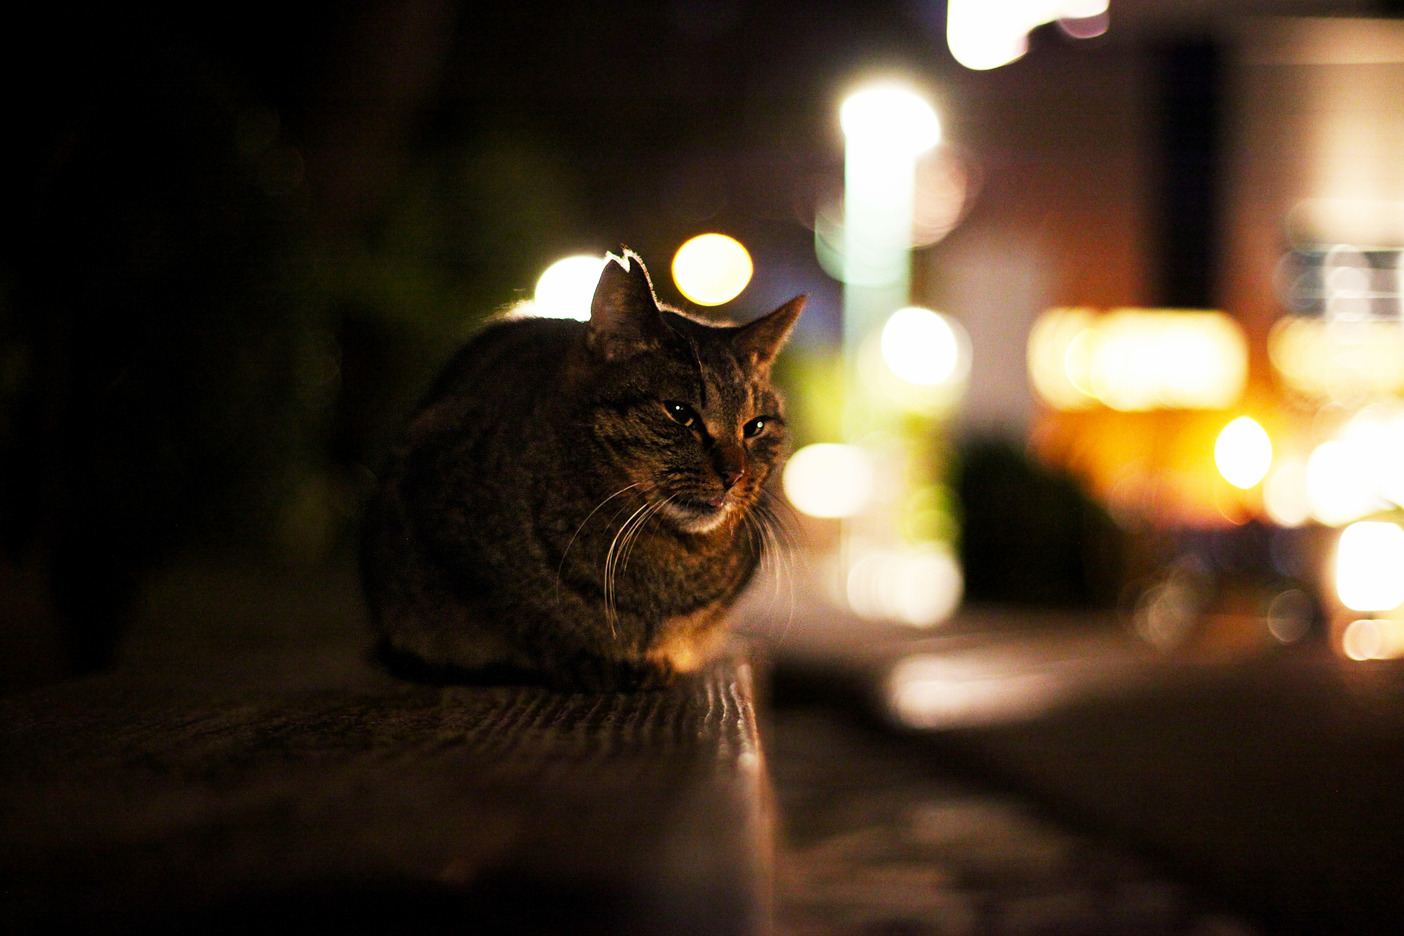 Saw a cat in the park by yotsuya station tokyo when walking by.